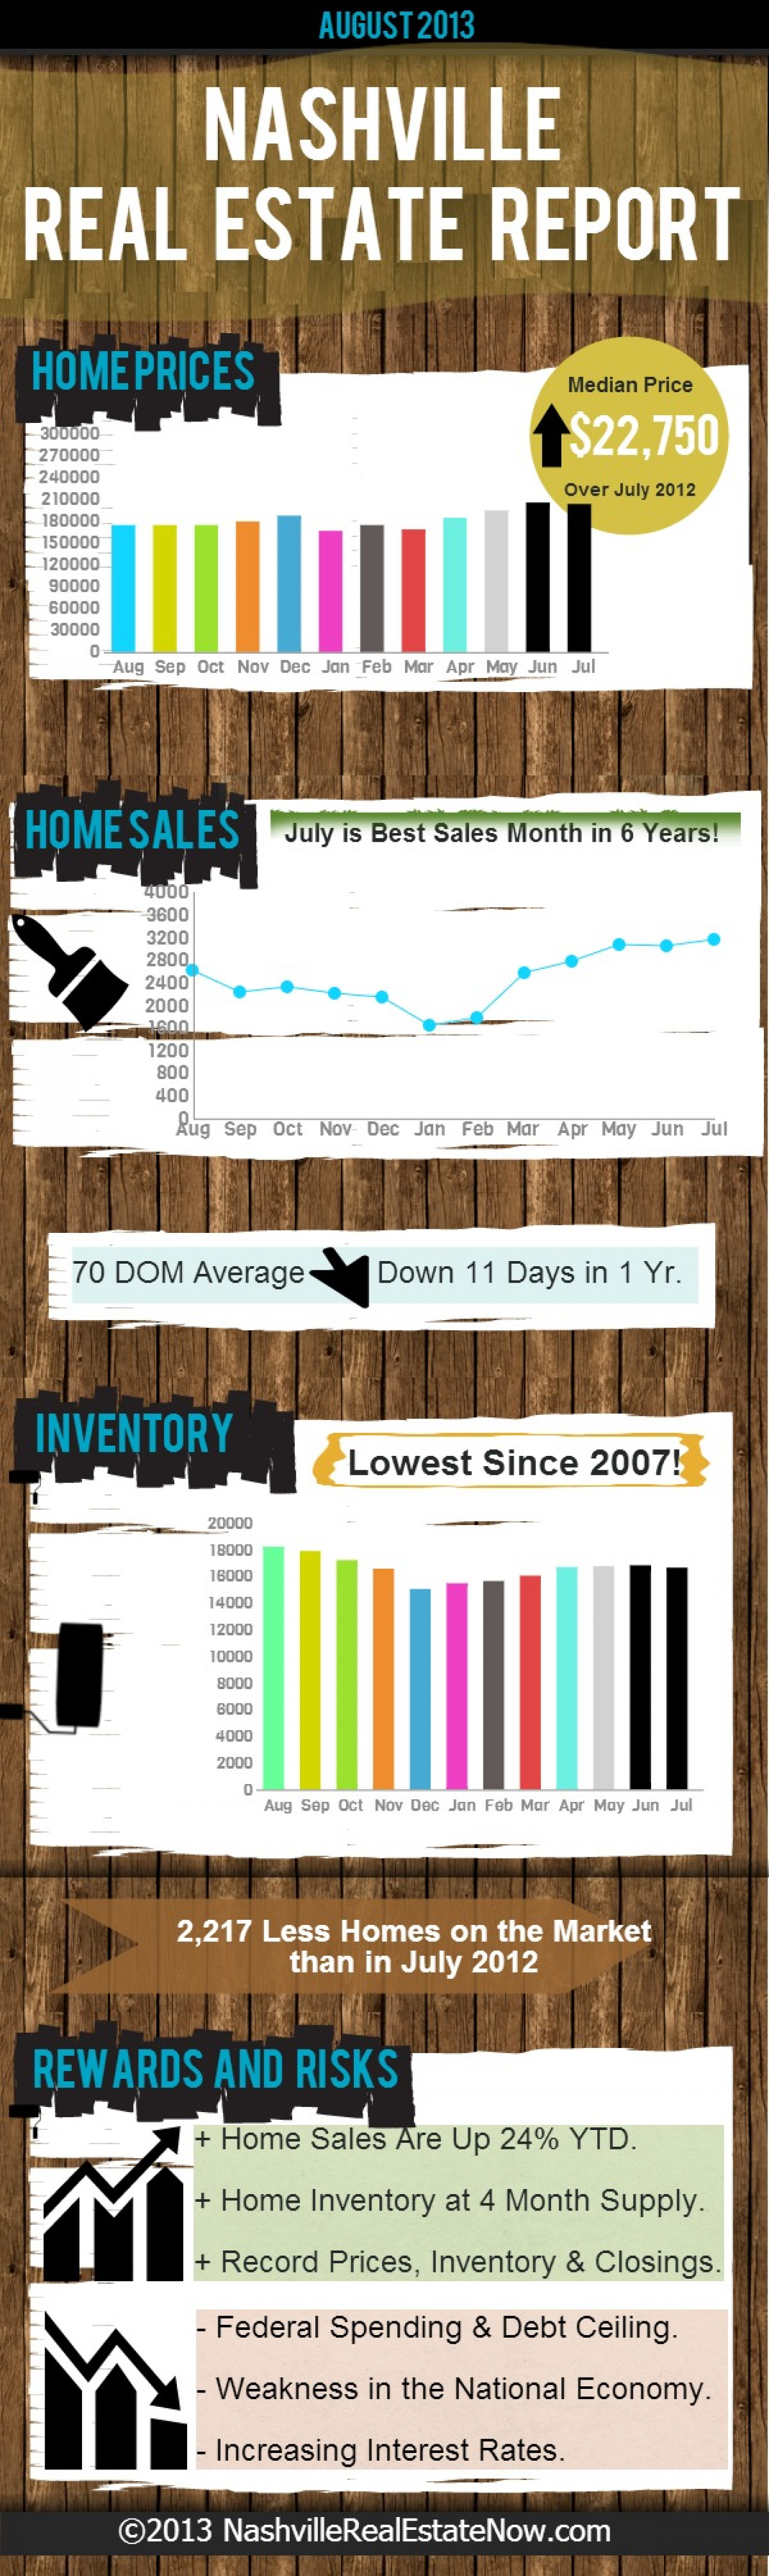 Nashville Real Estate Report - August 2013 Infographic